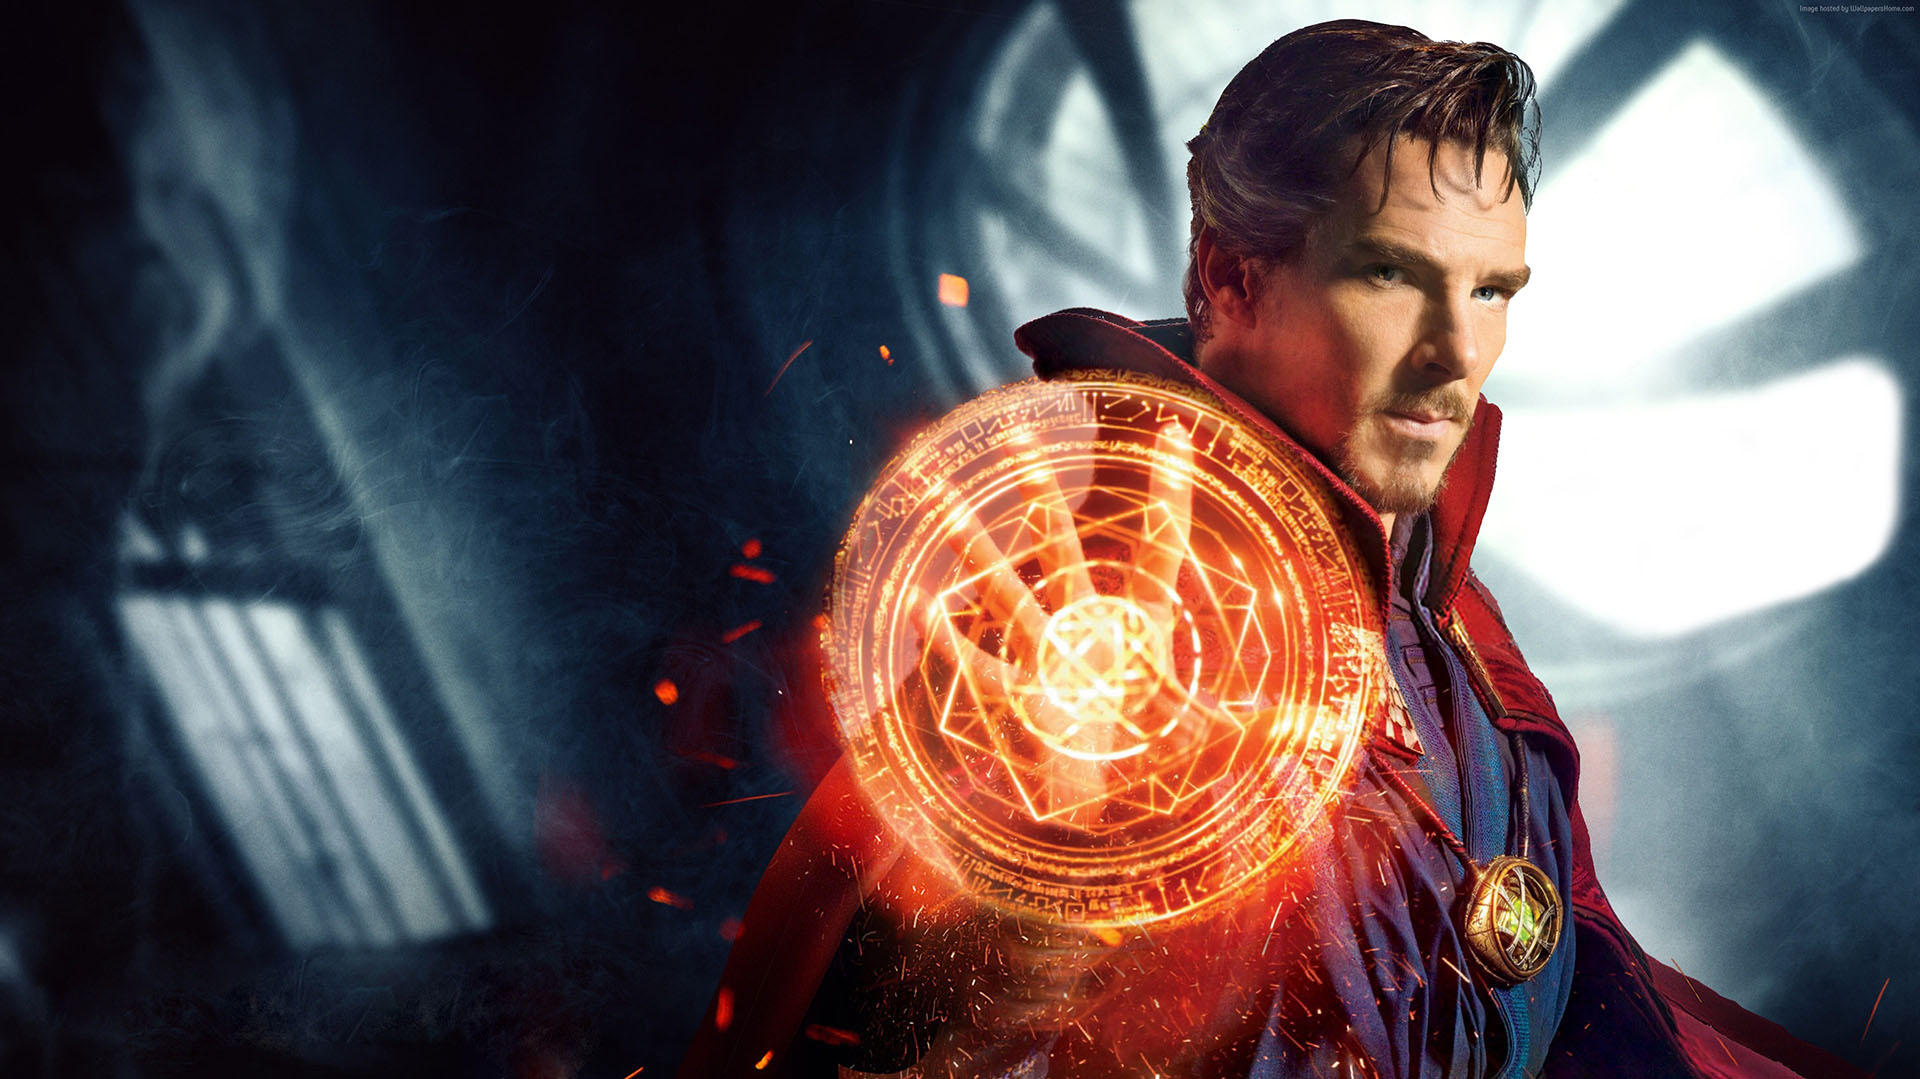 Doctor Strange Is a Visually Dazzling Film That Adds Magic to the Marvel Universe